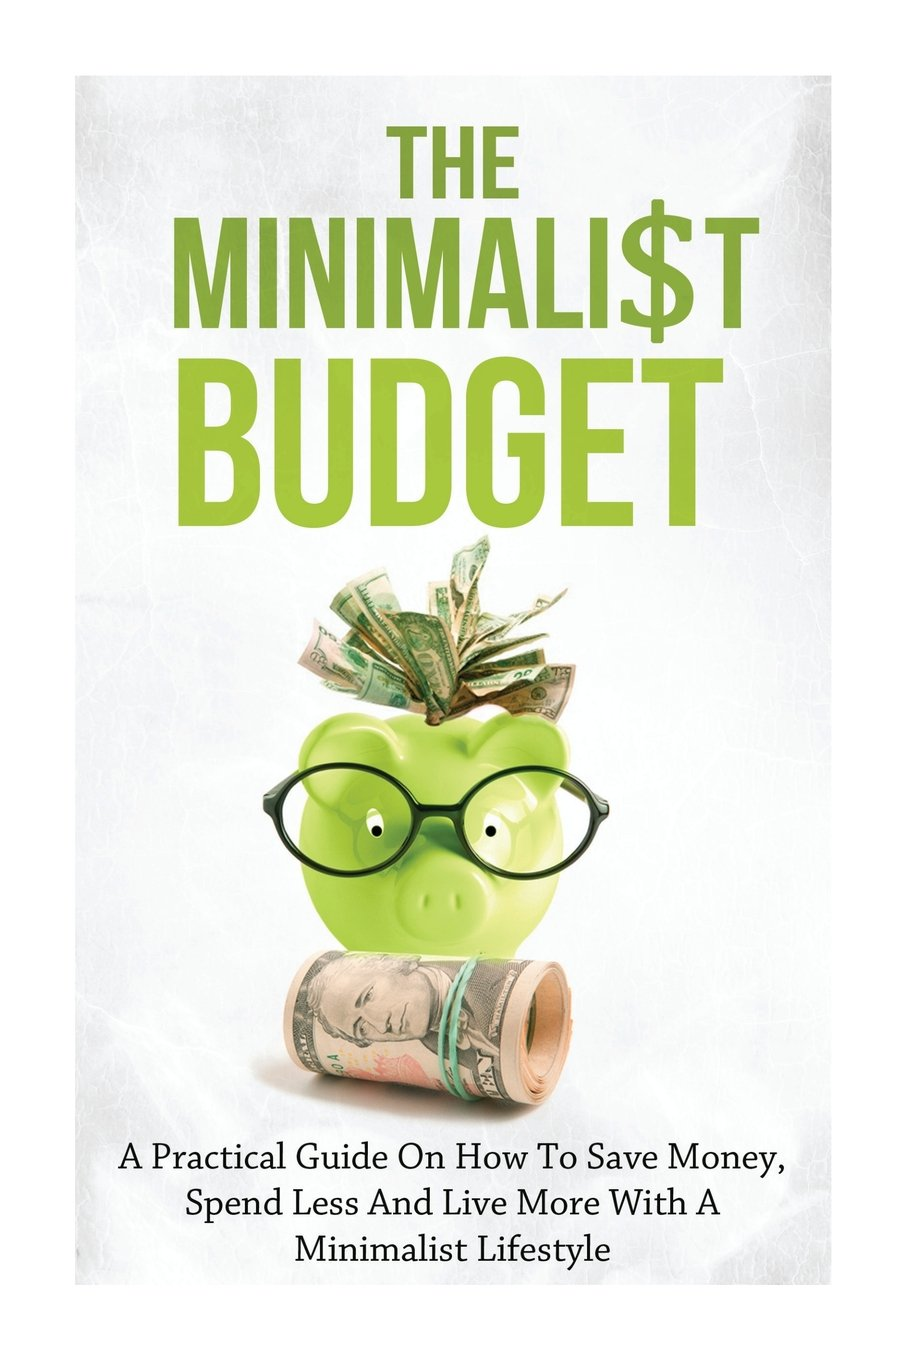 Download The Minimalist Budget: A Practical Guide On How To Save Money, Spend Less And Live More With A Minimalist Lifestyle PDF